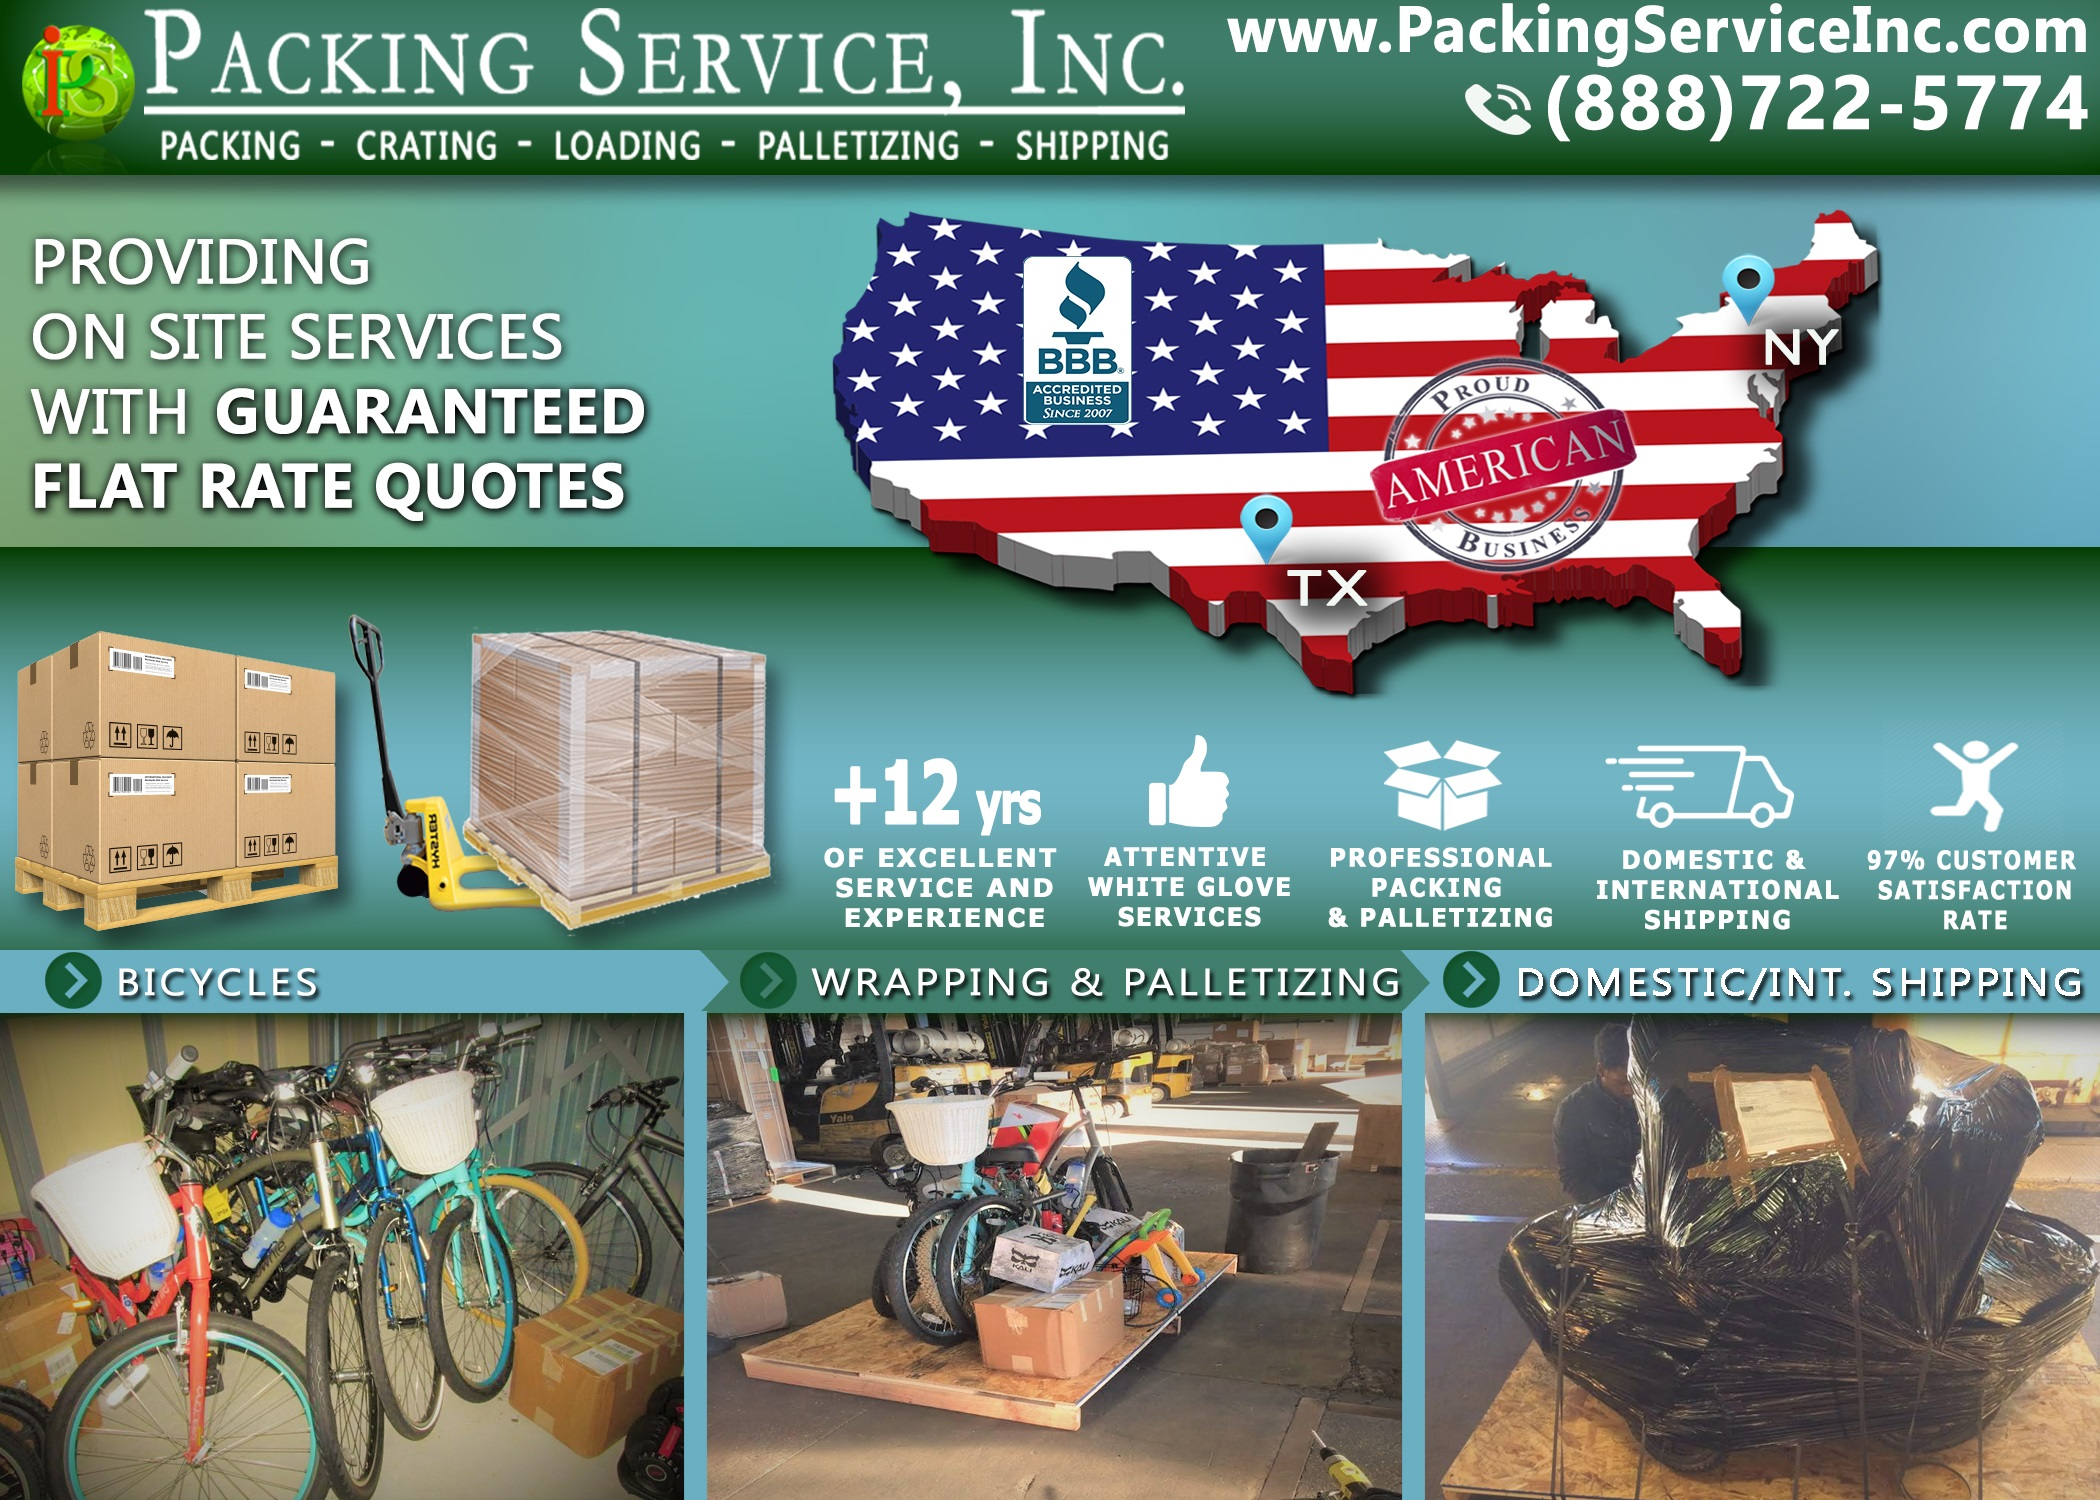 Wrapping bikes, custom palletizing and shipping services from NY to TX with Packing Service, Inc. 787